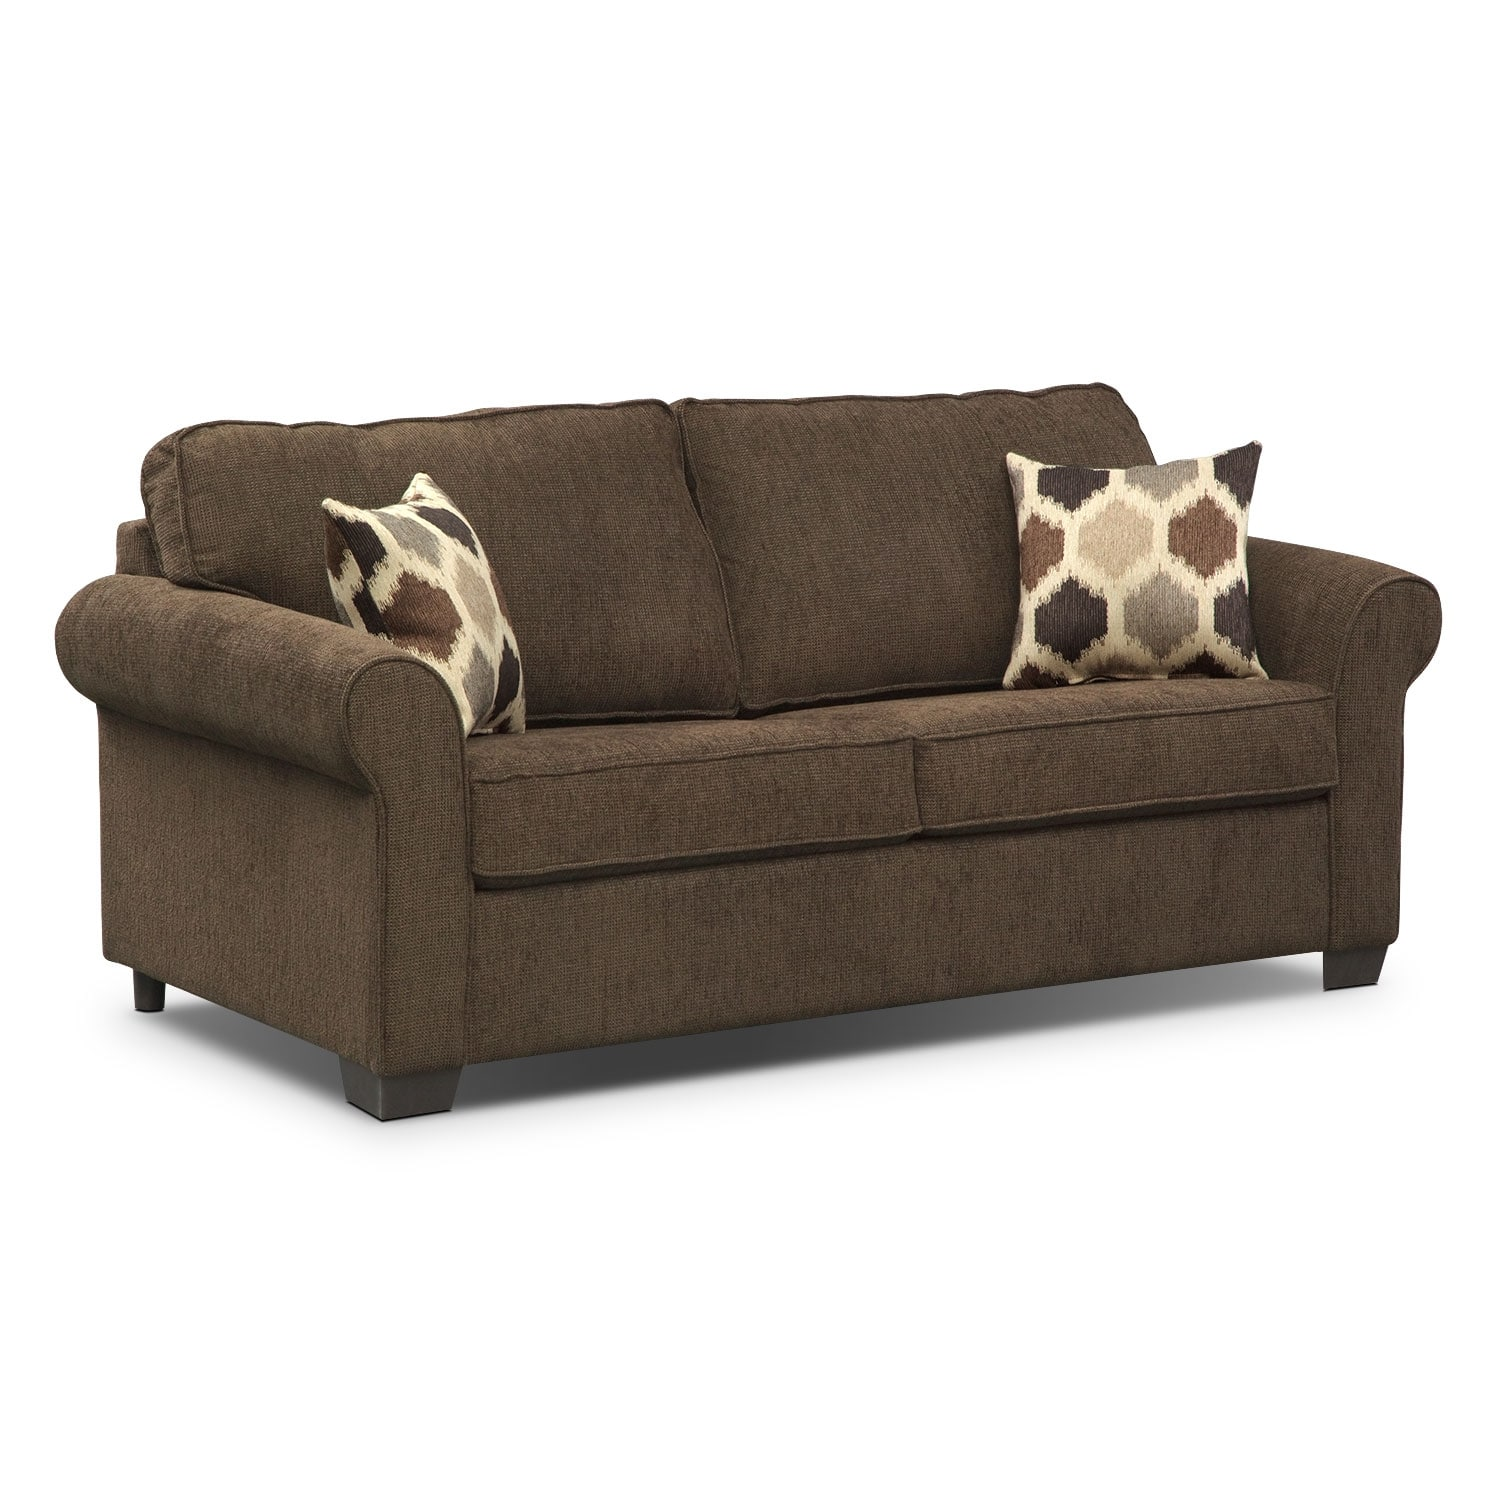 Fletcher II Full Innerspring Sleeper Sofa